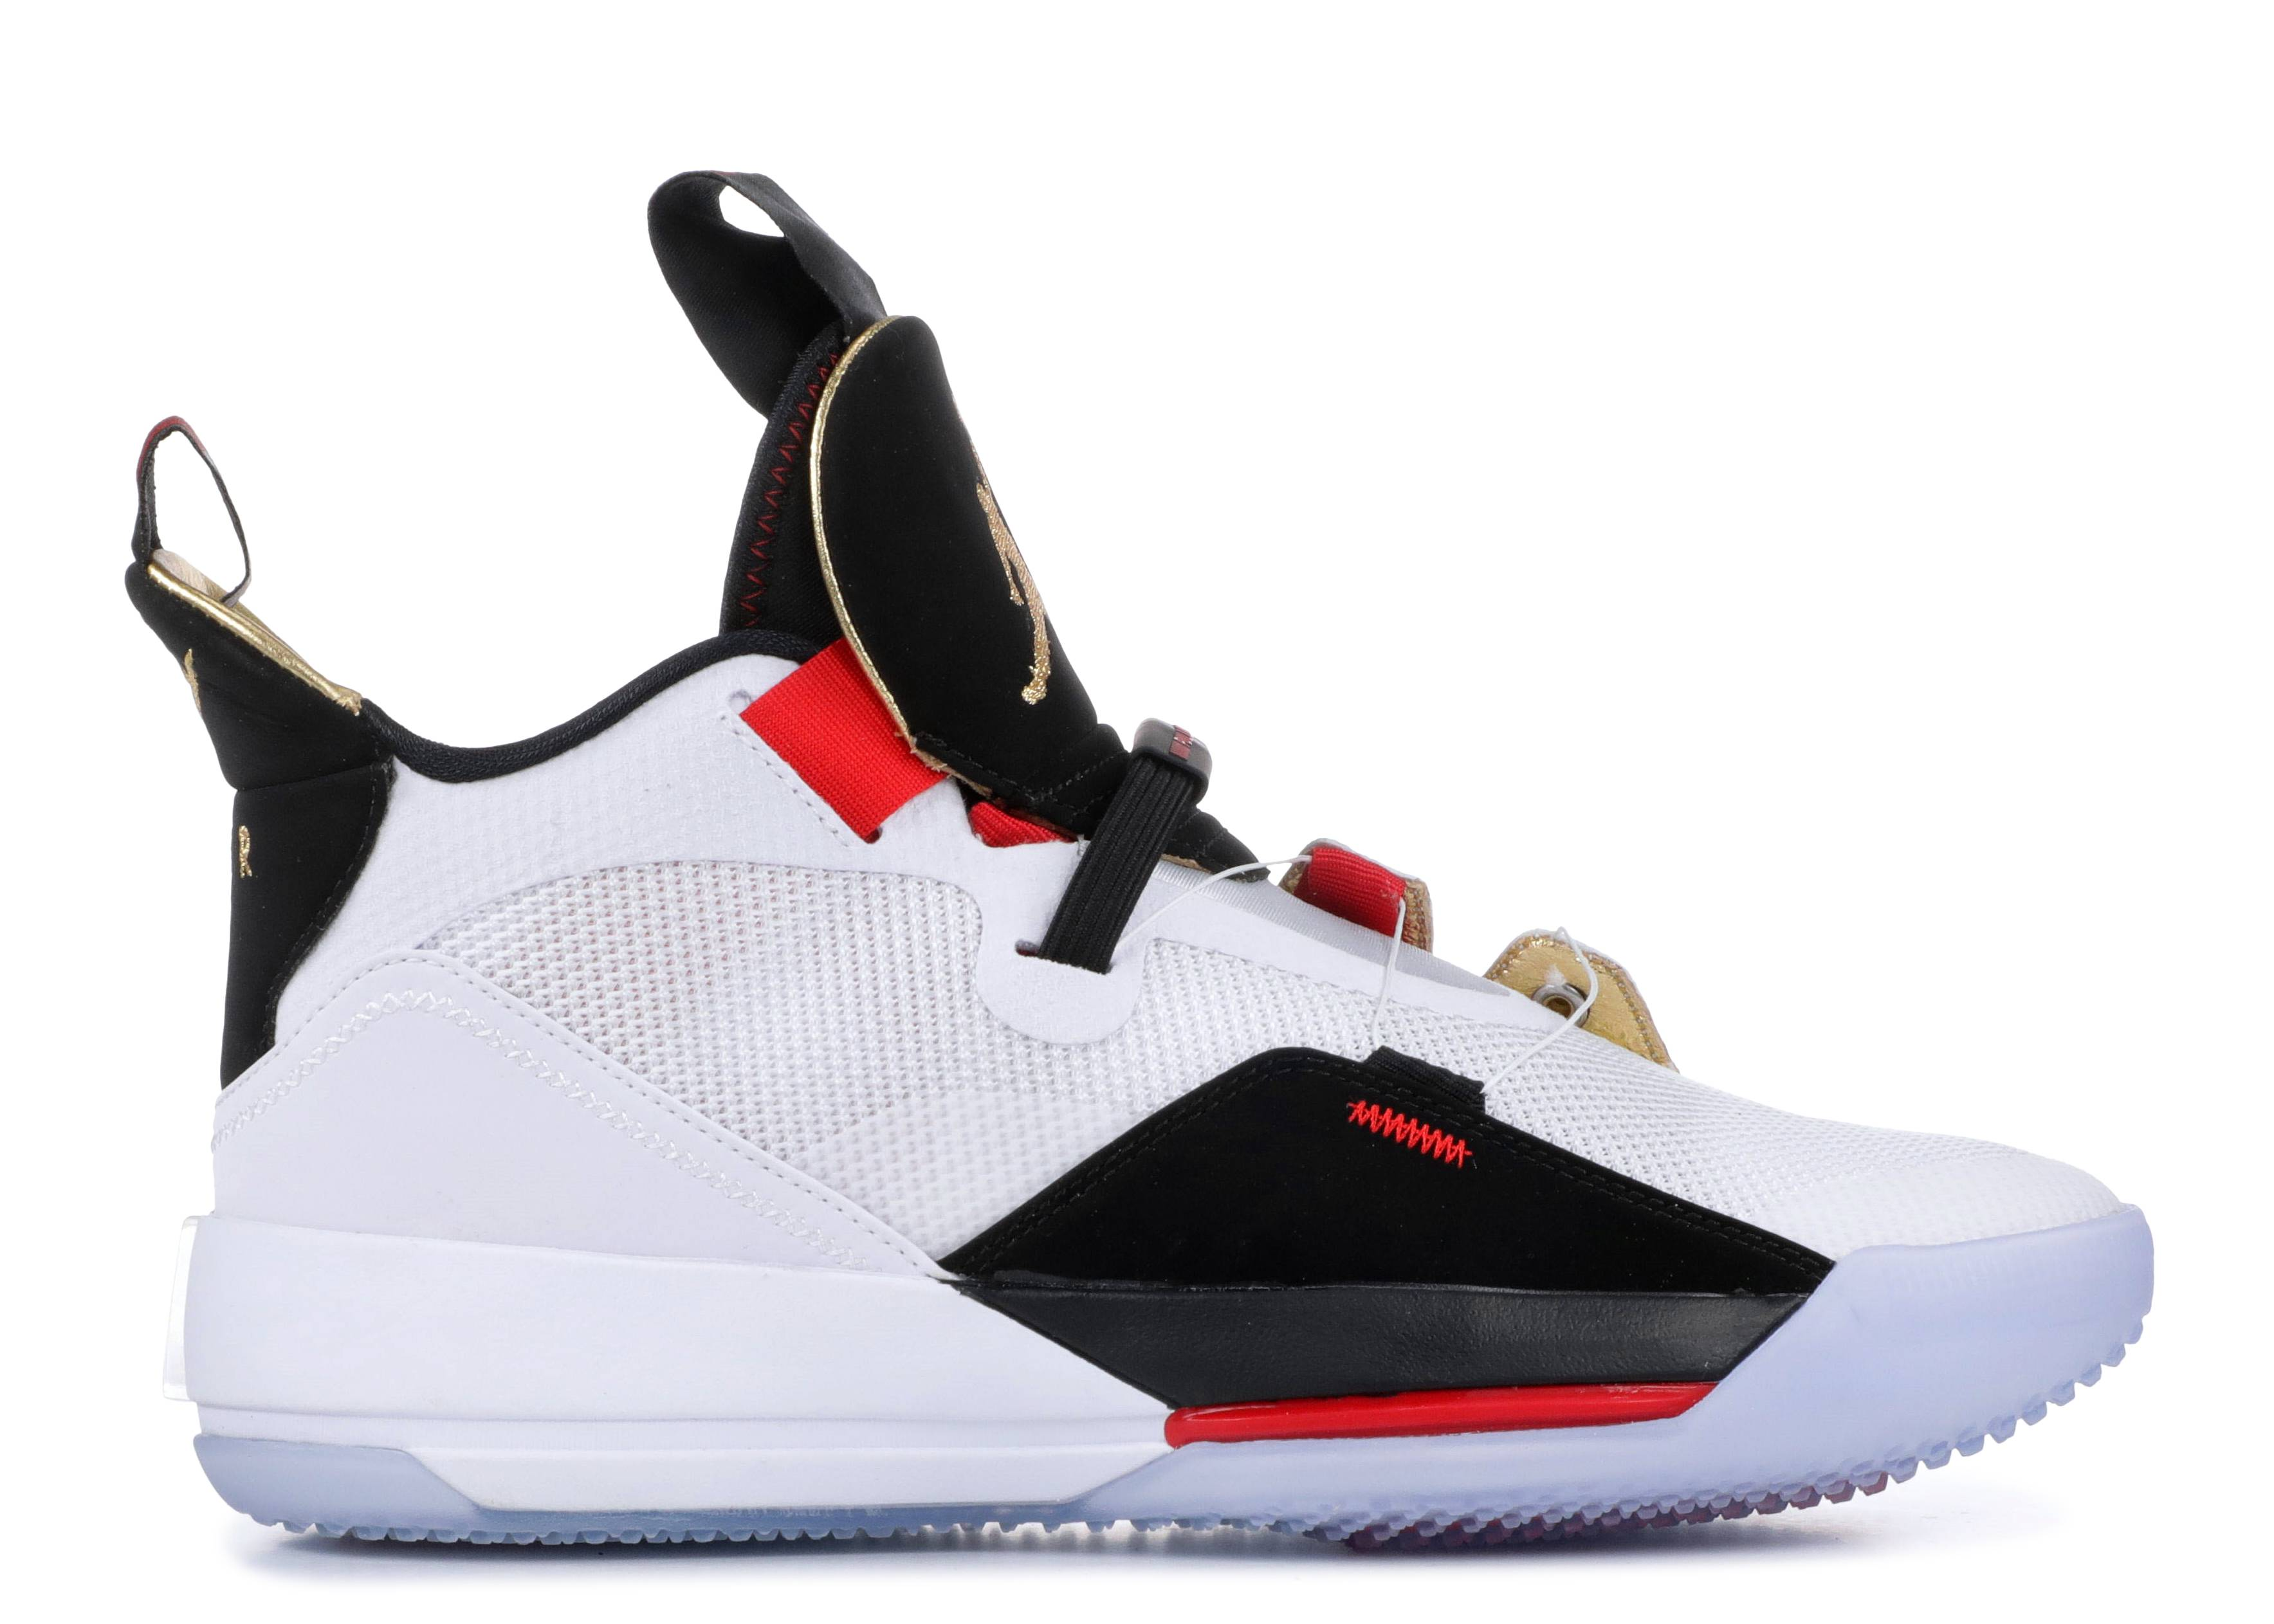 200d3836e70 Air Jordan Xxxiii - Air Jordan - aq8830 100 - white metallic gold ...